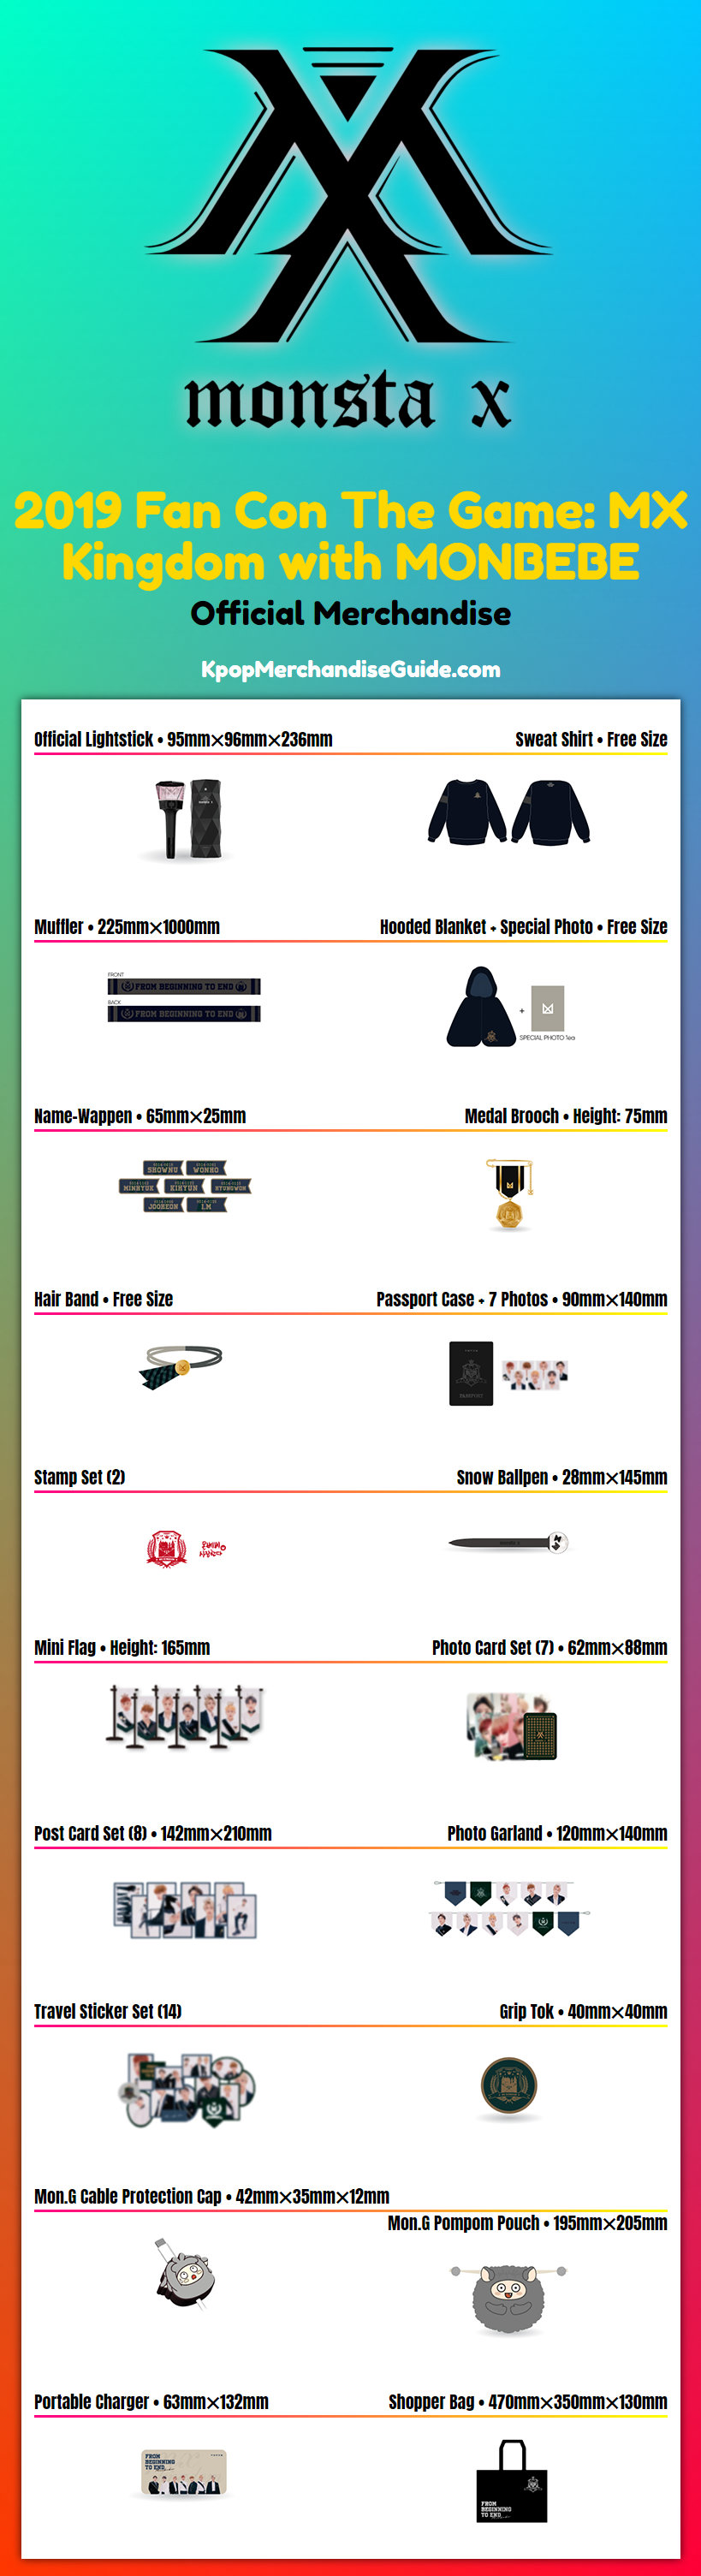 2019 Fan Con The Game: MX Kingdom with MONBEBE Merchandise